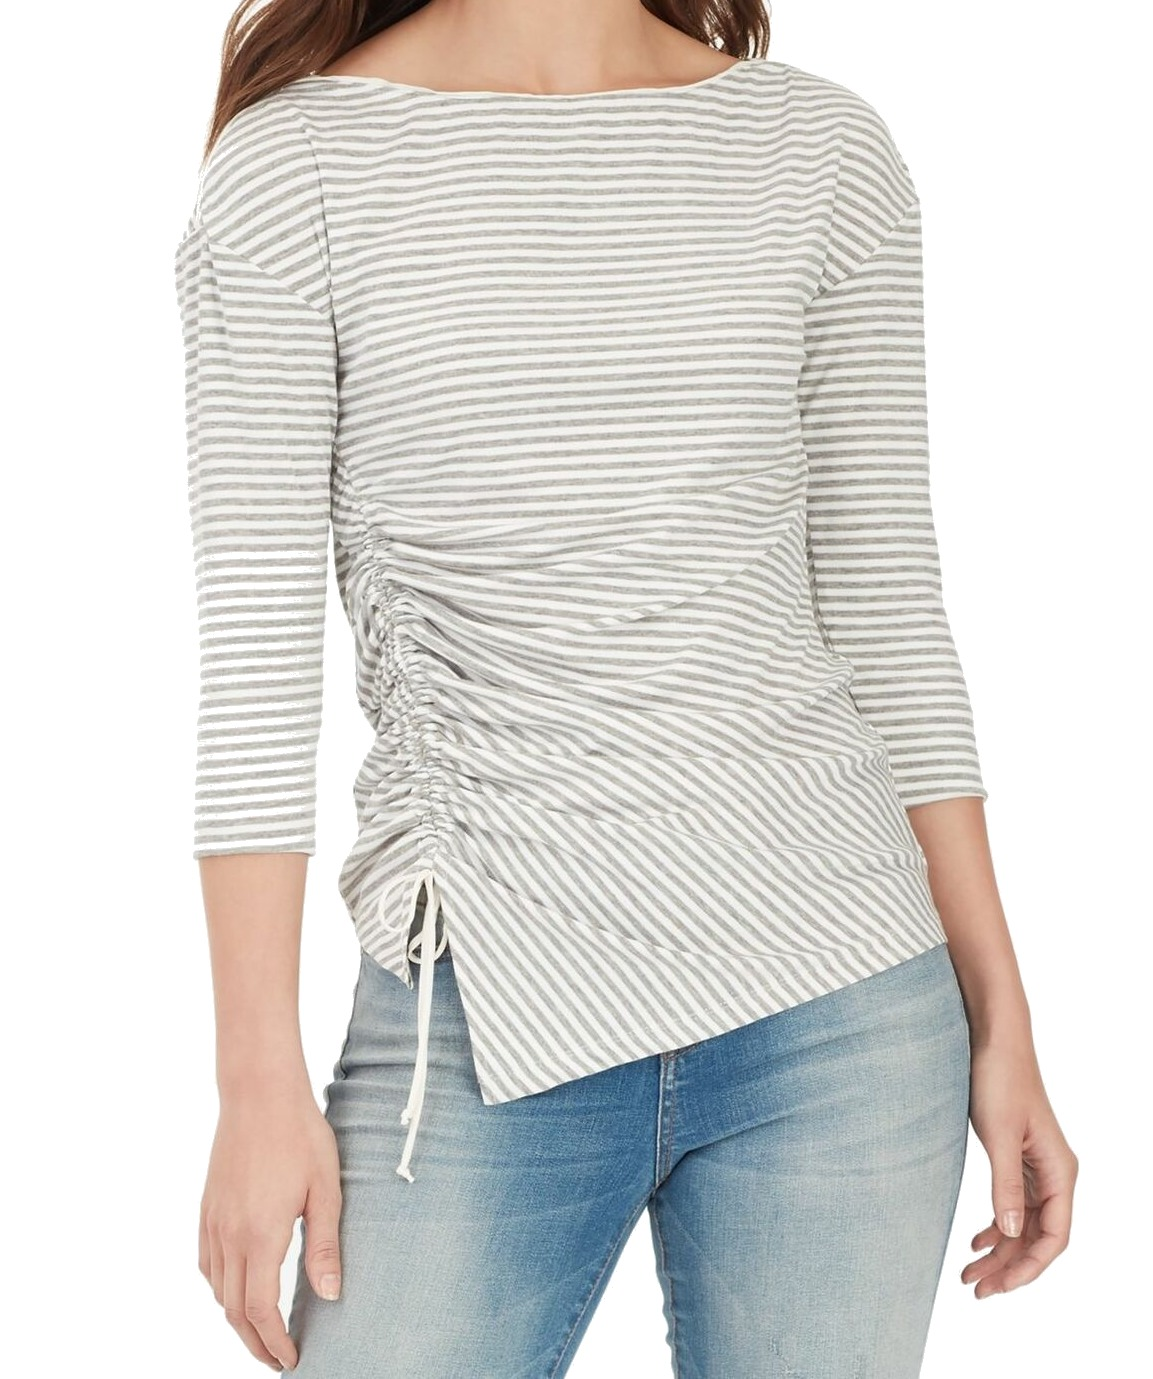 William-Rast-Women-039-s-Top-Blouse-Gray-Size-Large-L-Striped-Ruched